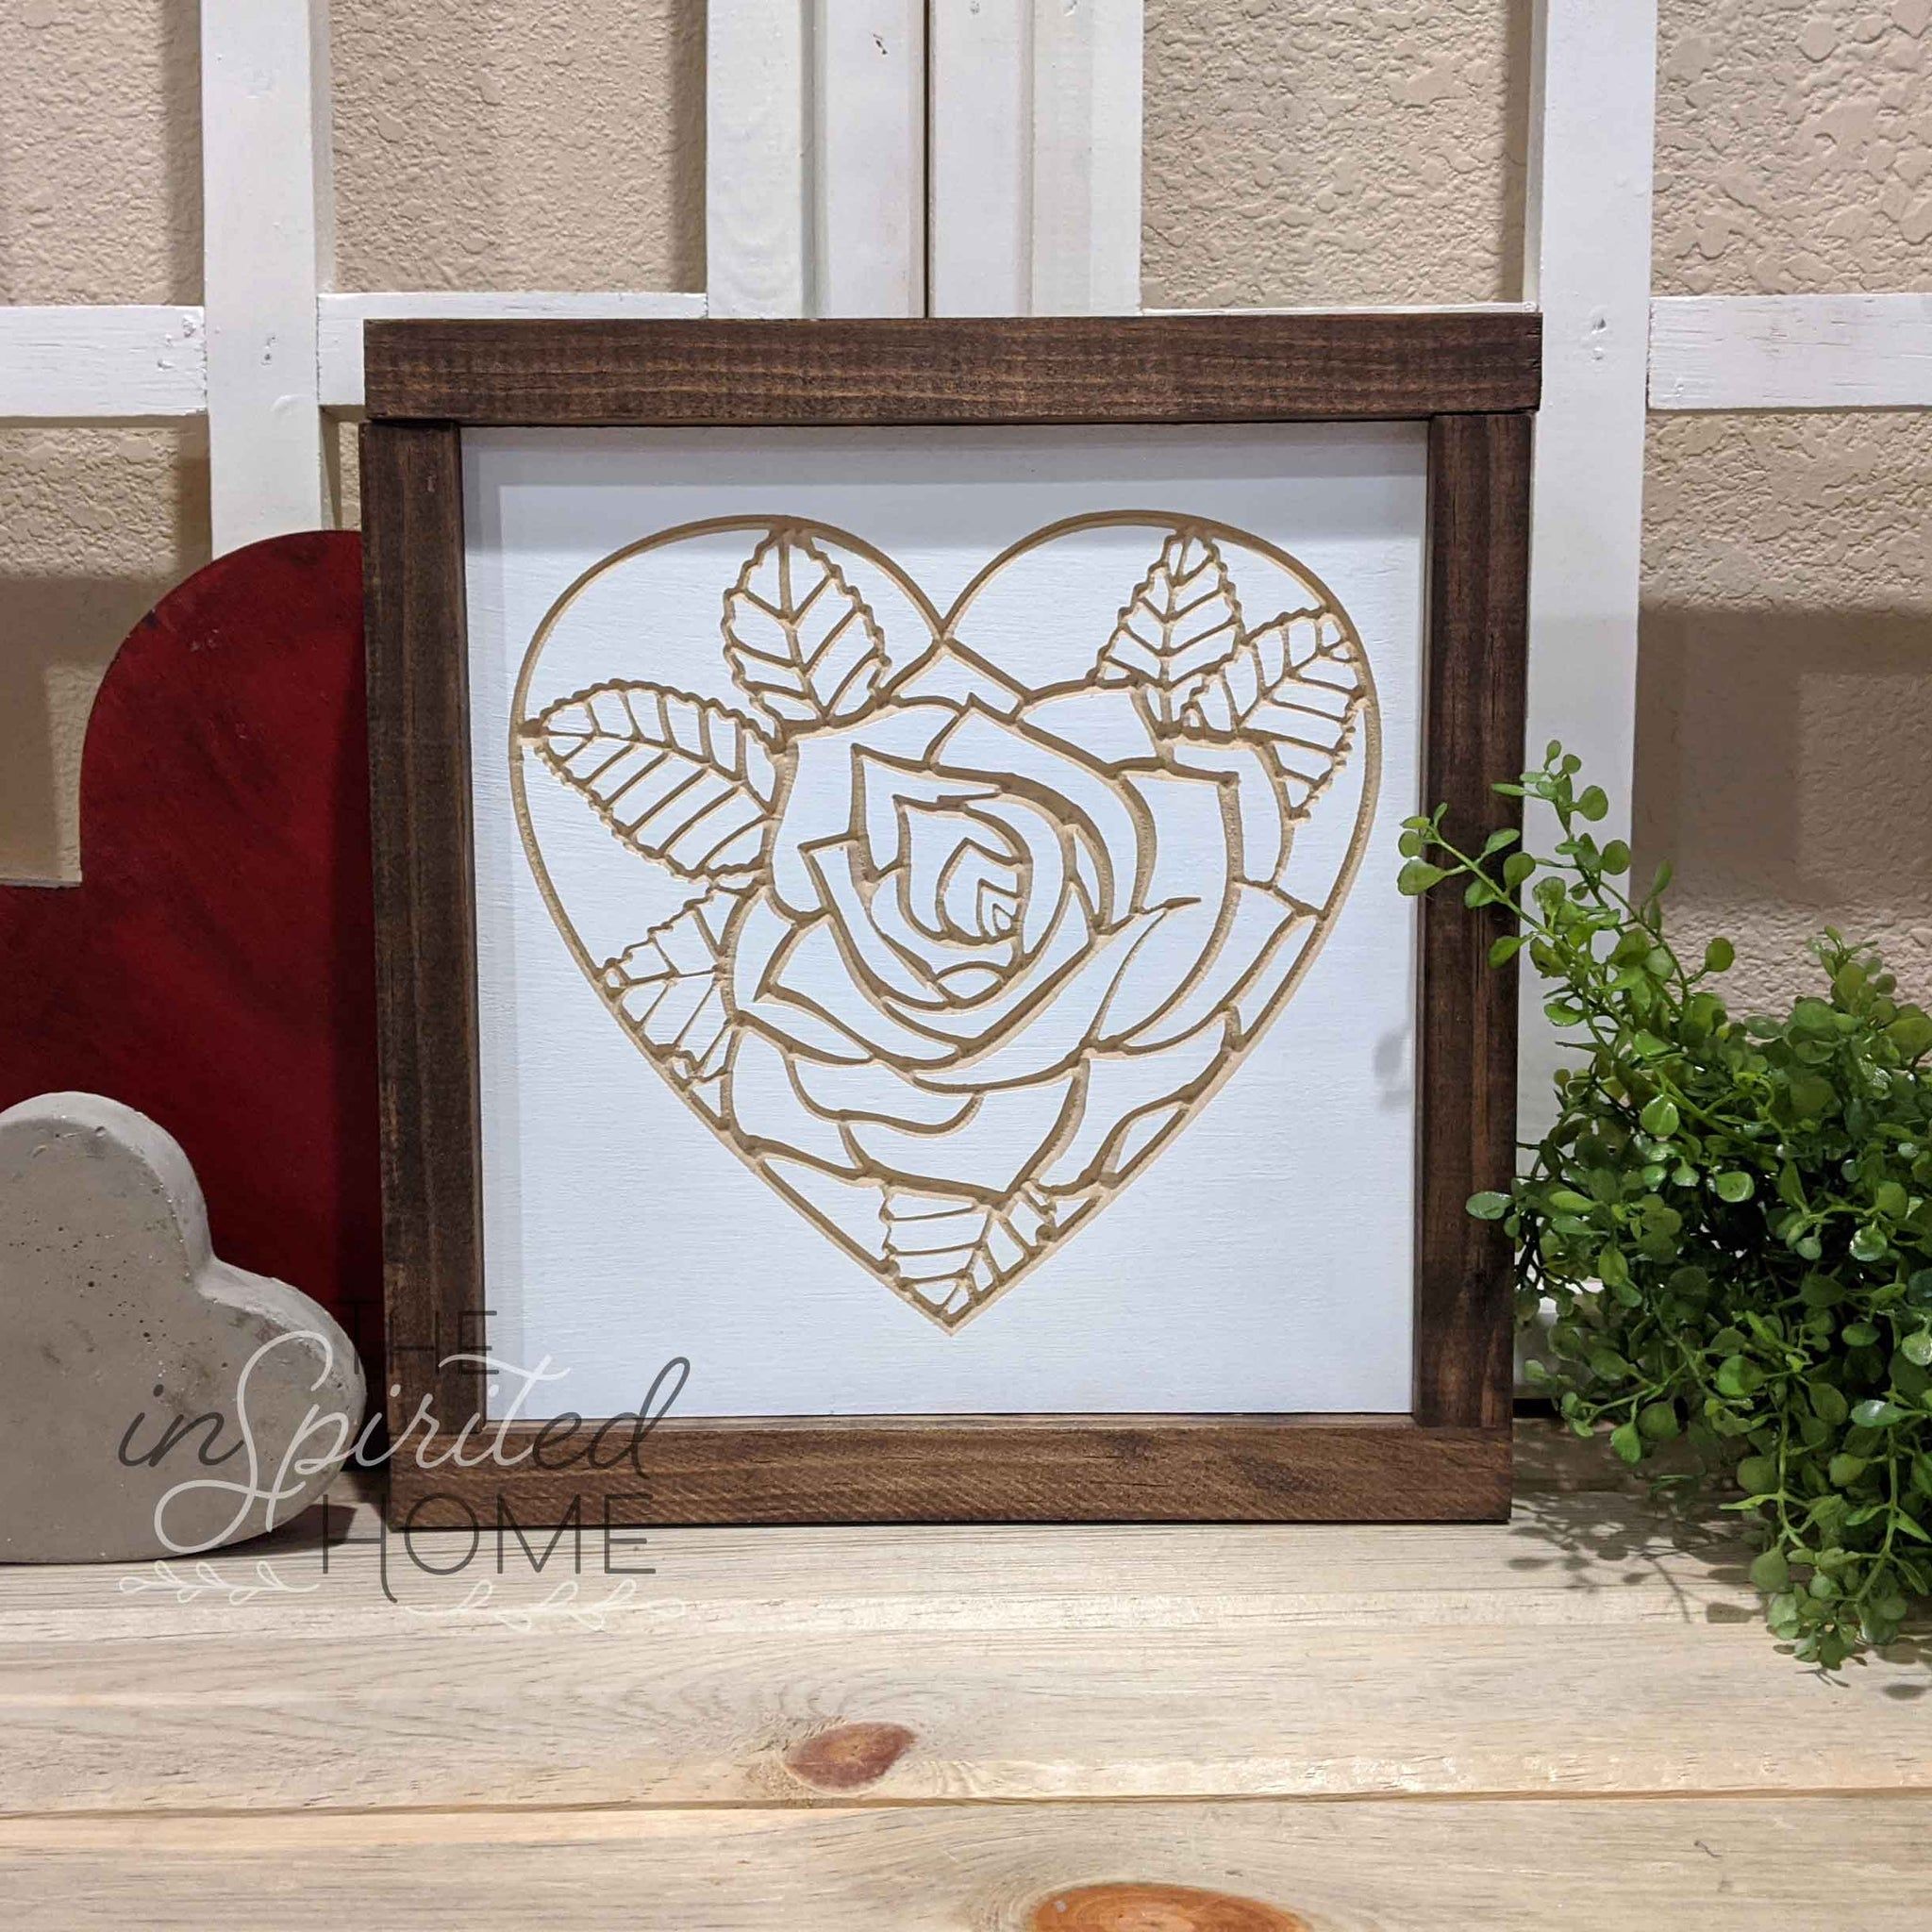 Heart Wood Decor - The Inspirited Home